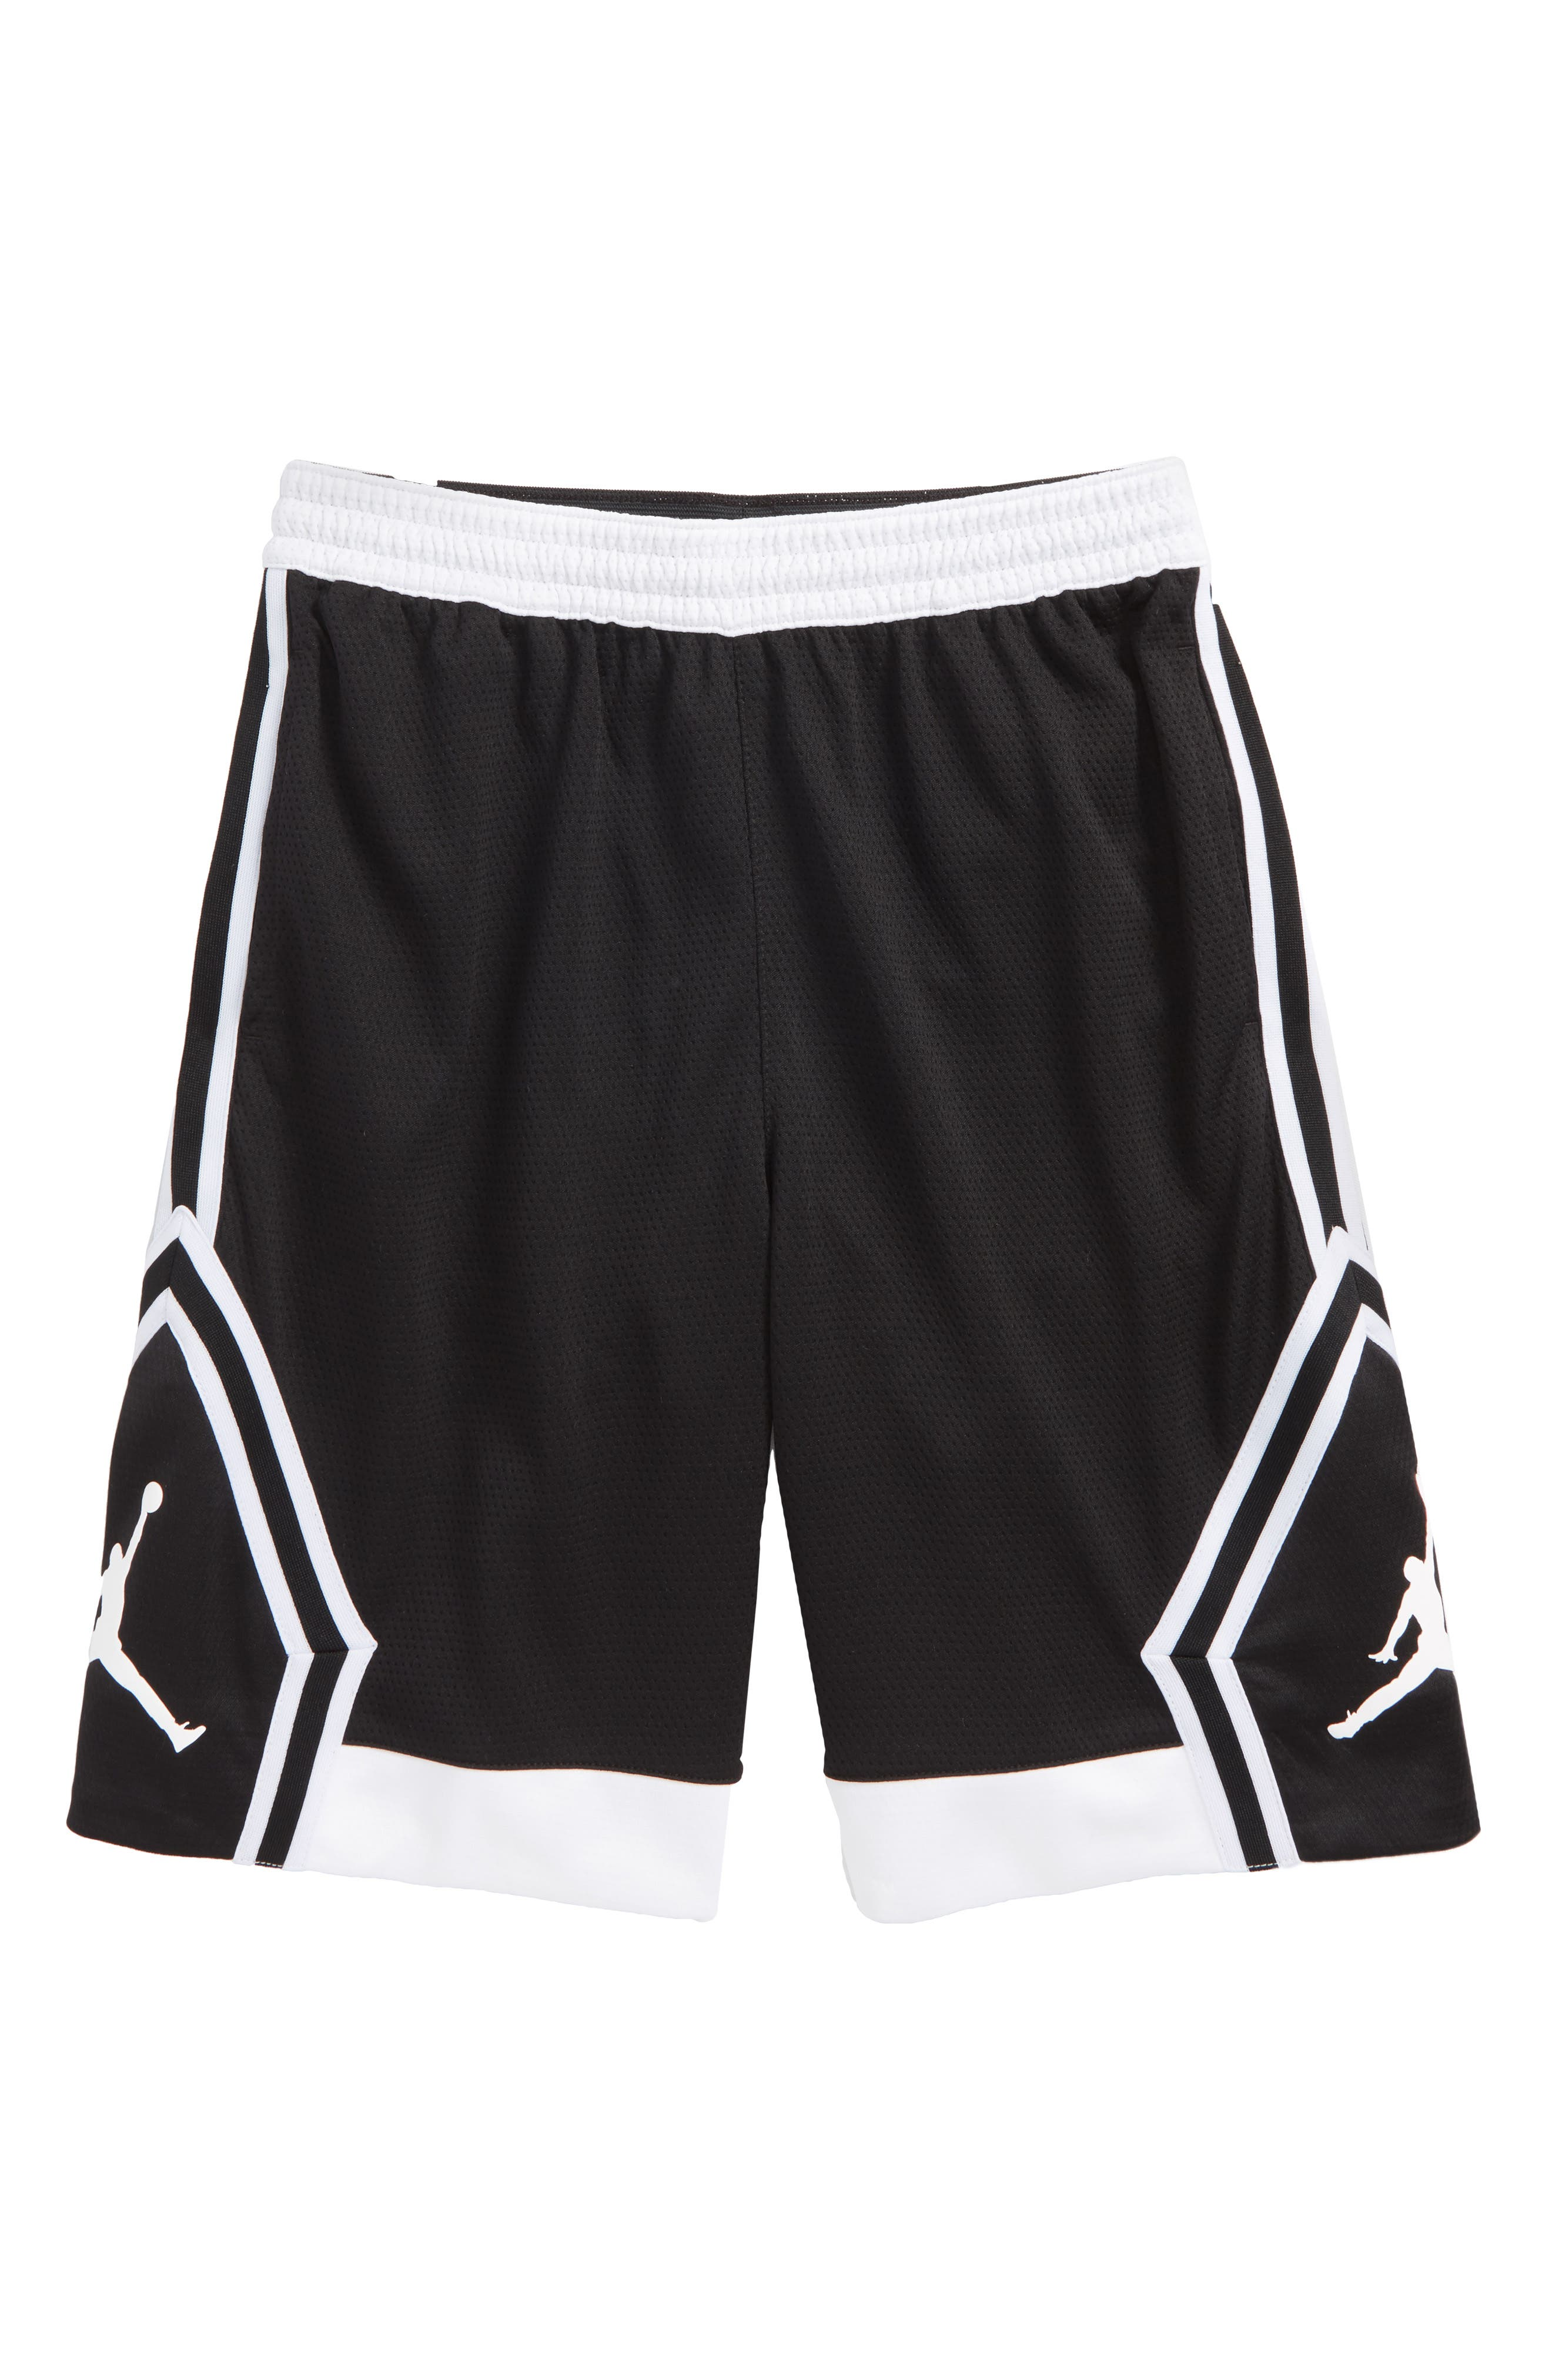 Jordan Rise Diamond Short,                             Main thumbnail 1, color,                             004